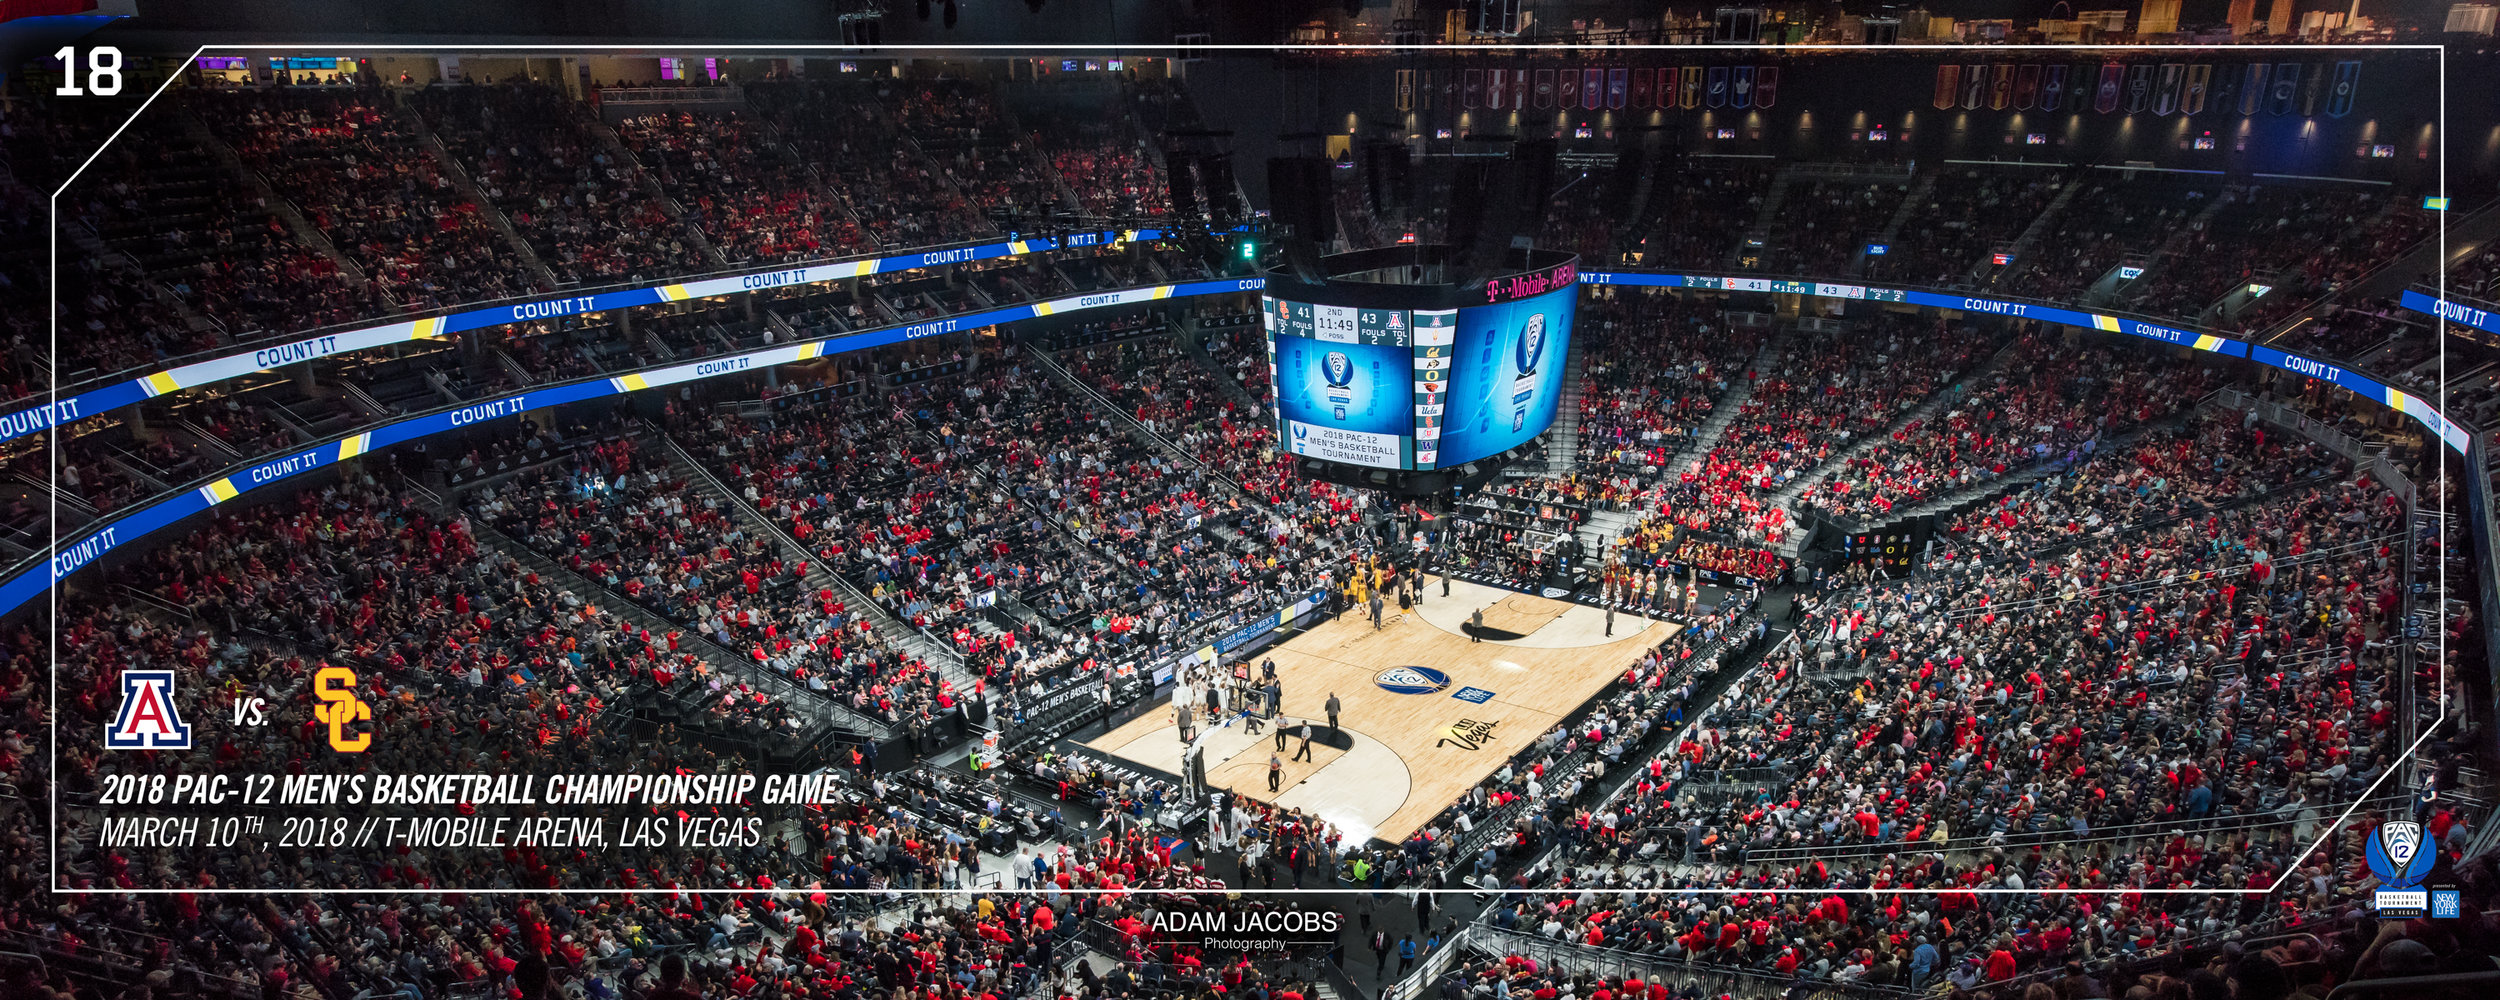 T Mobile Arena Blog For Commercial Events And Fine Art